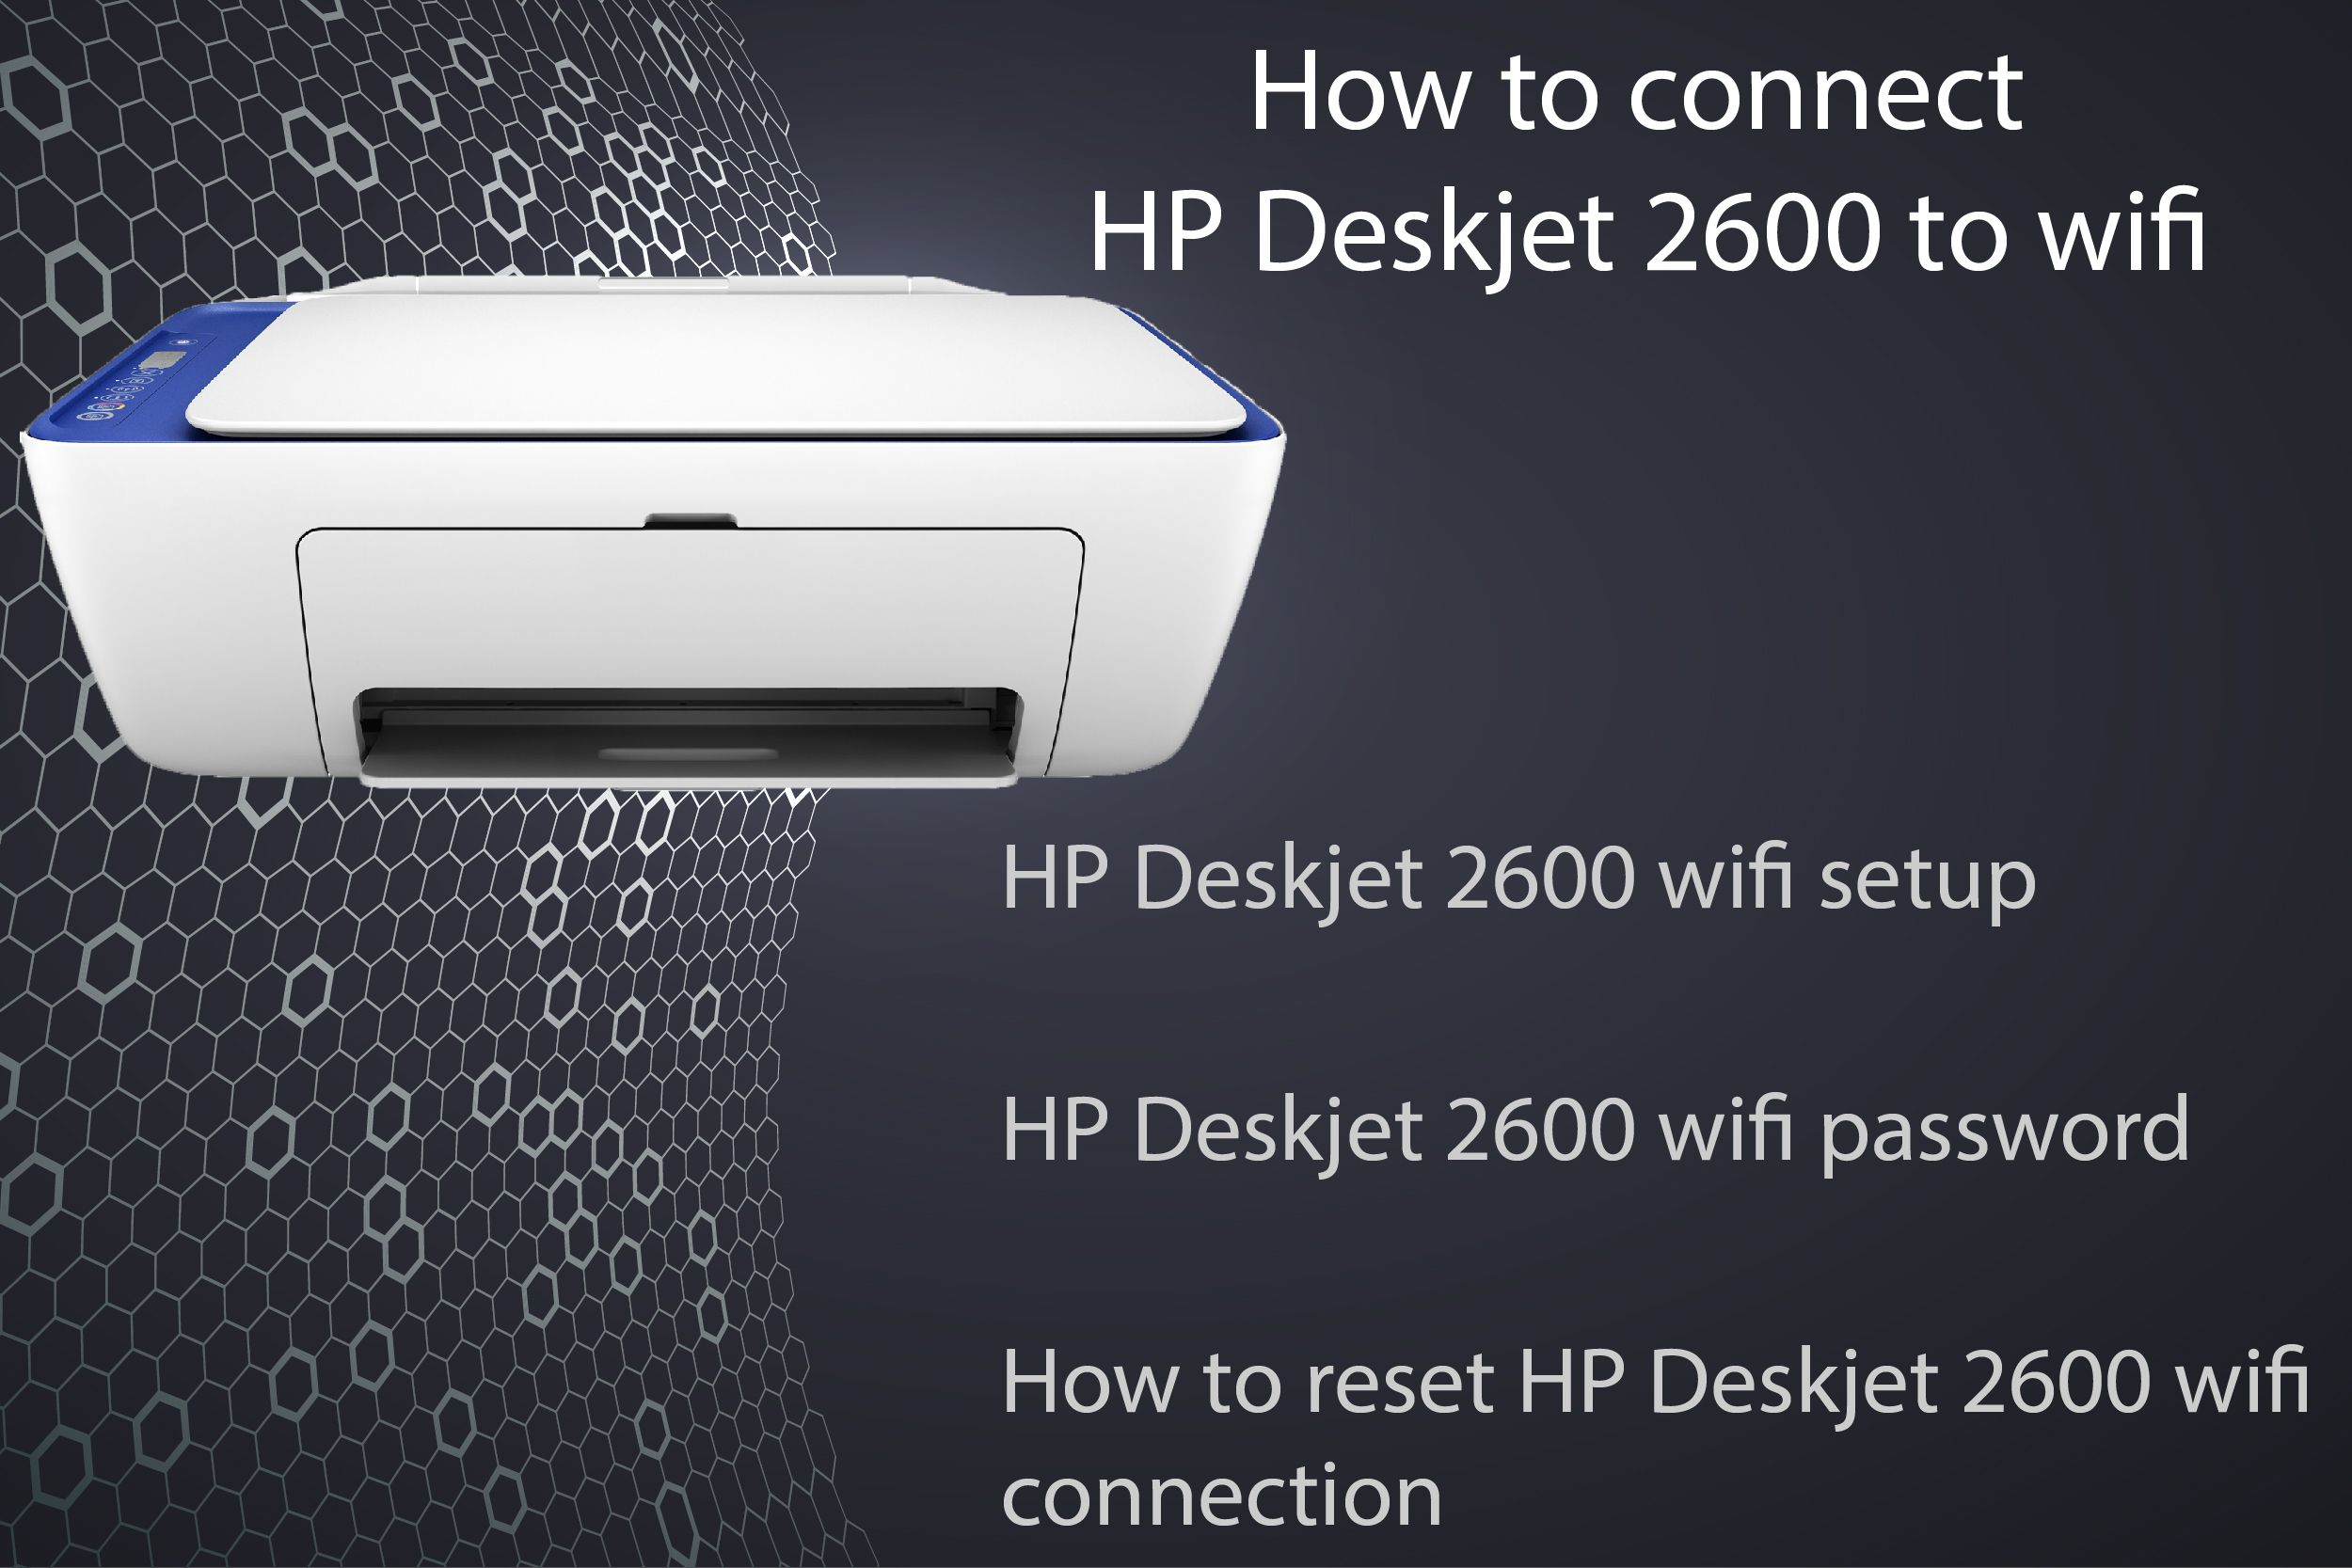 Solutions available for HP Deskjet 2600 wifi setup, finding and